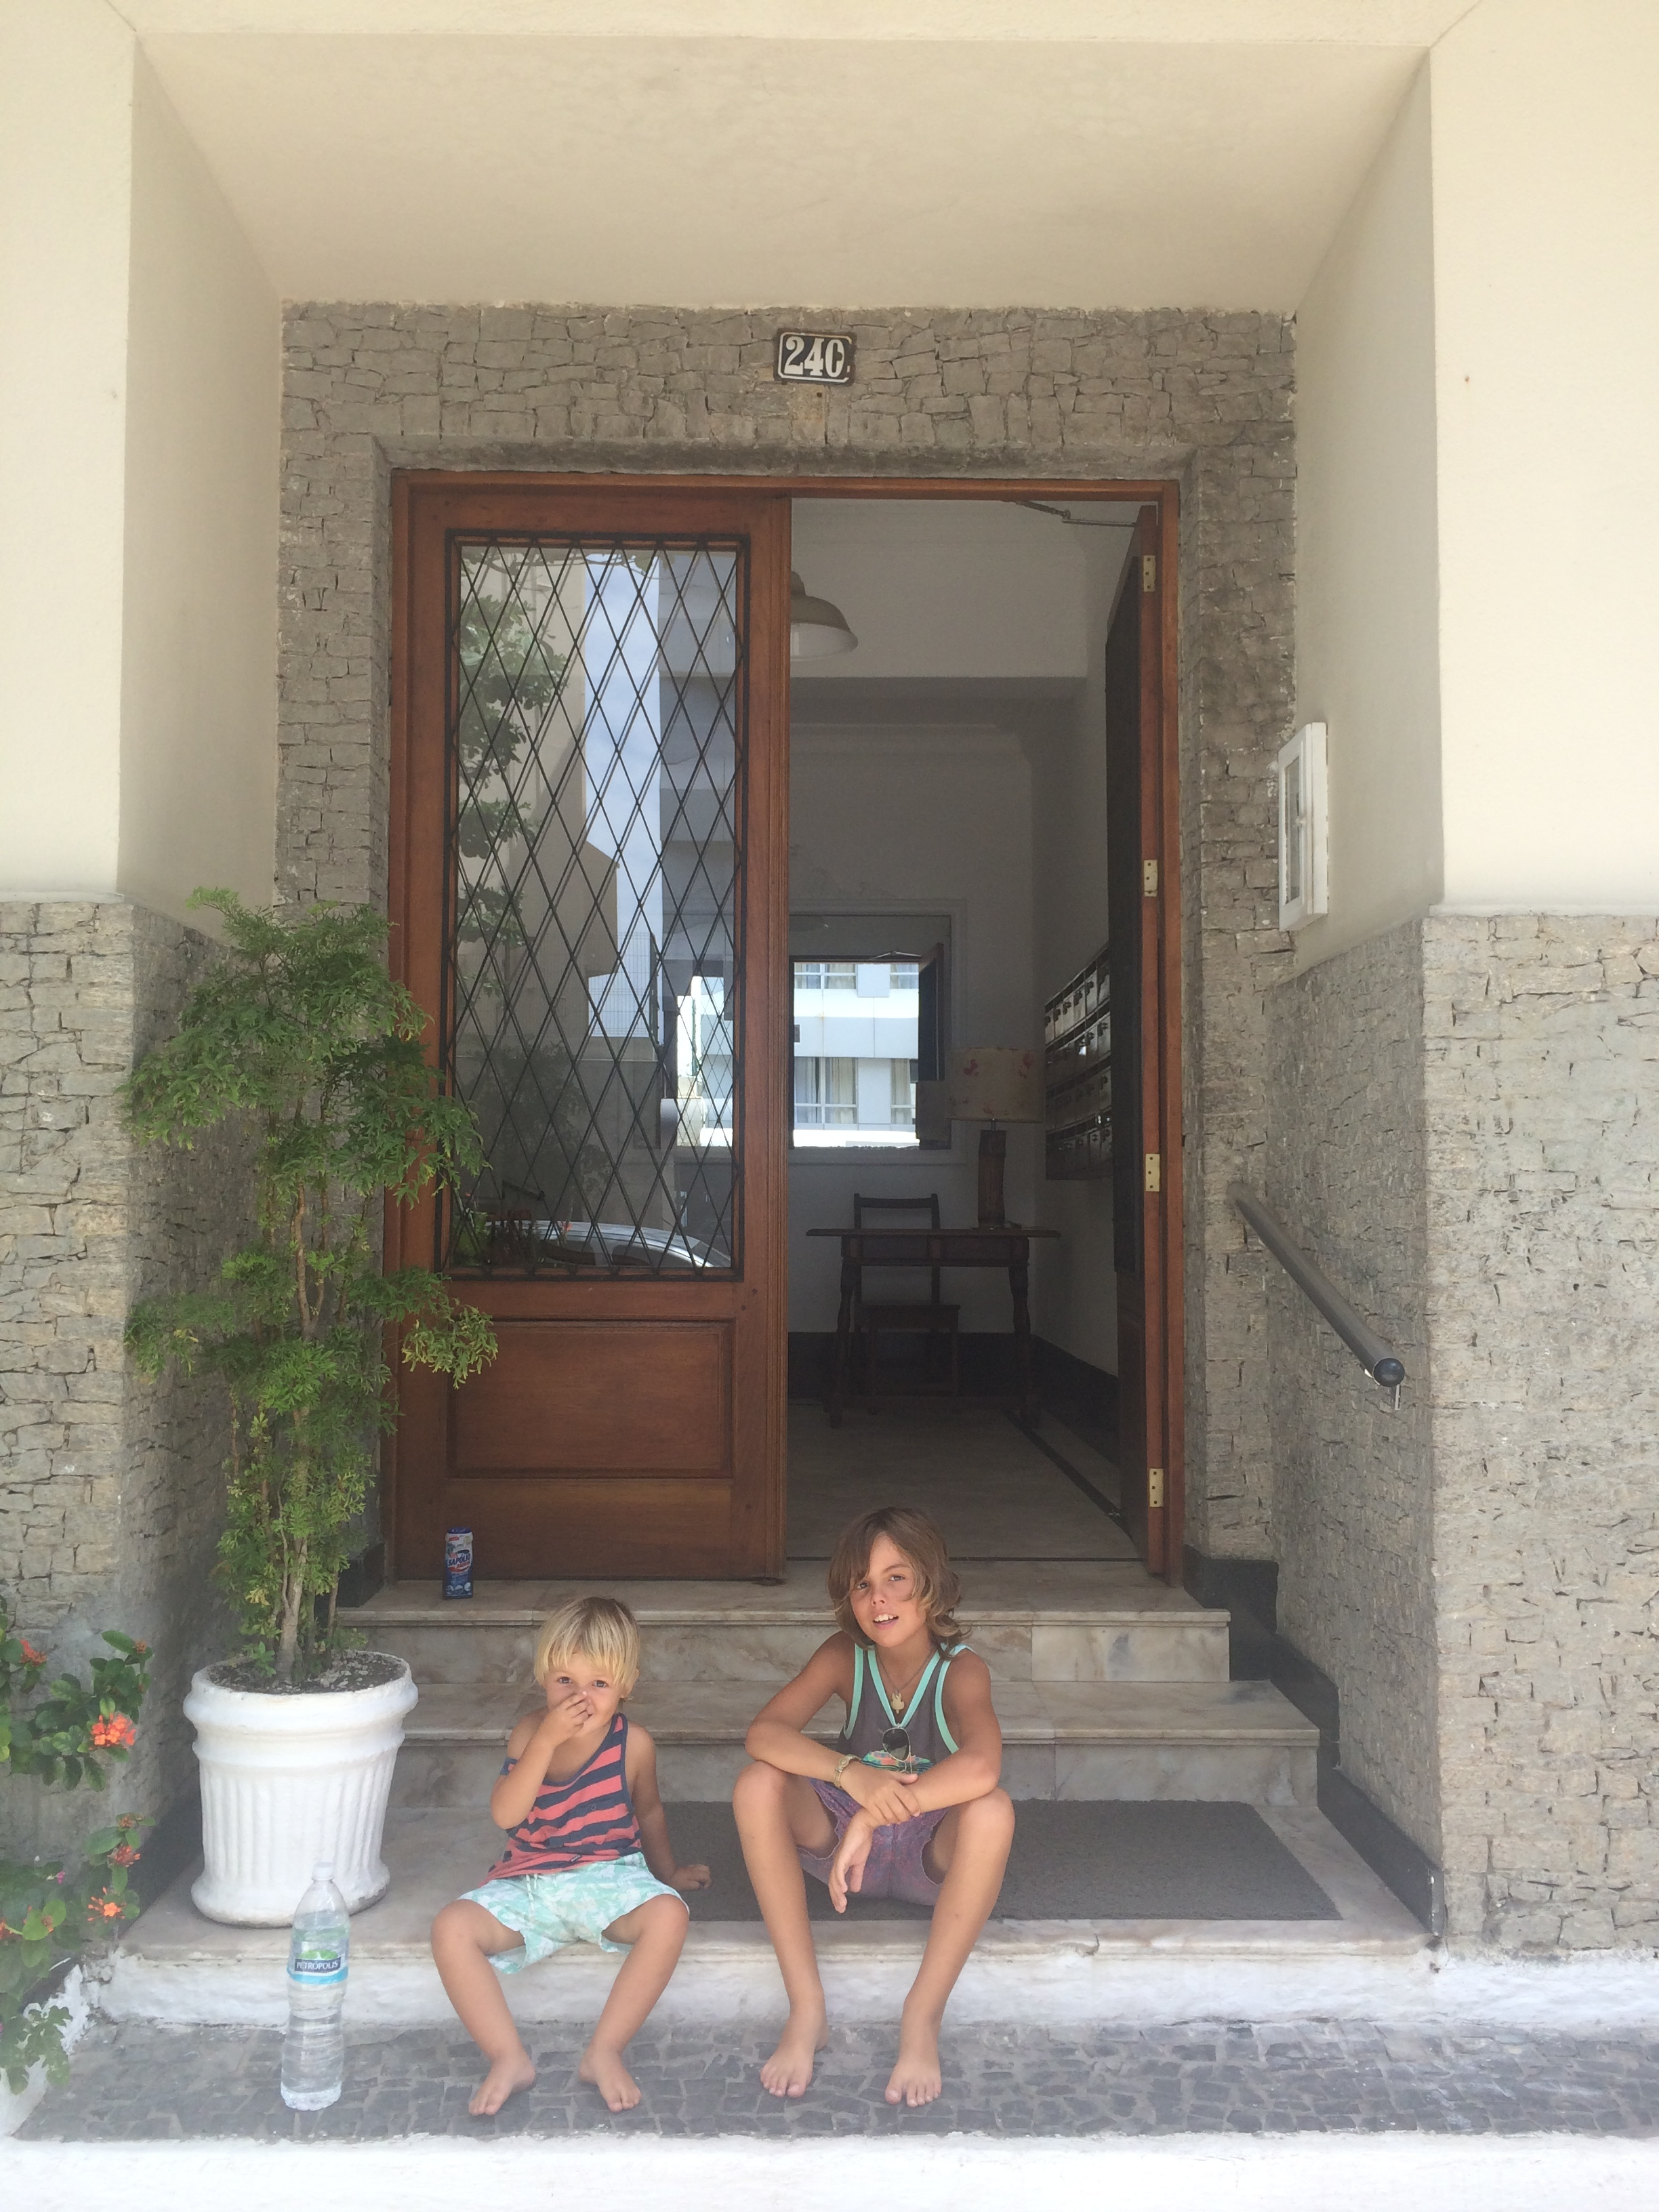 this is the front of the apartment where we live in rio i like it our beds are really confutable to sleep in and i have my own tv so i am relaxed.